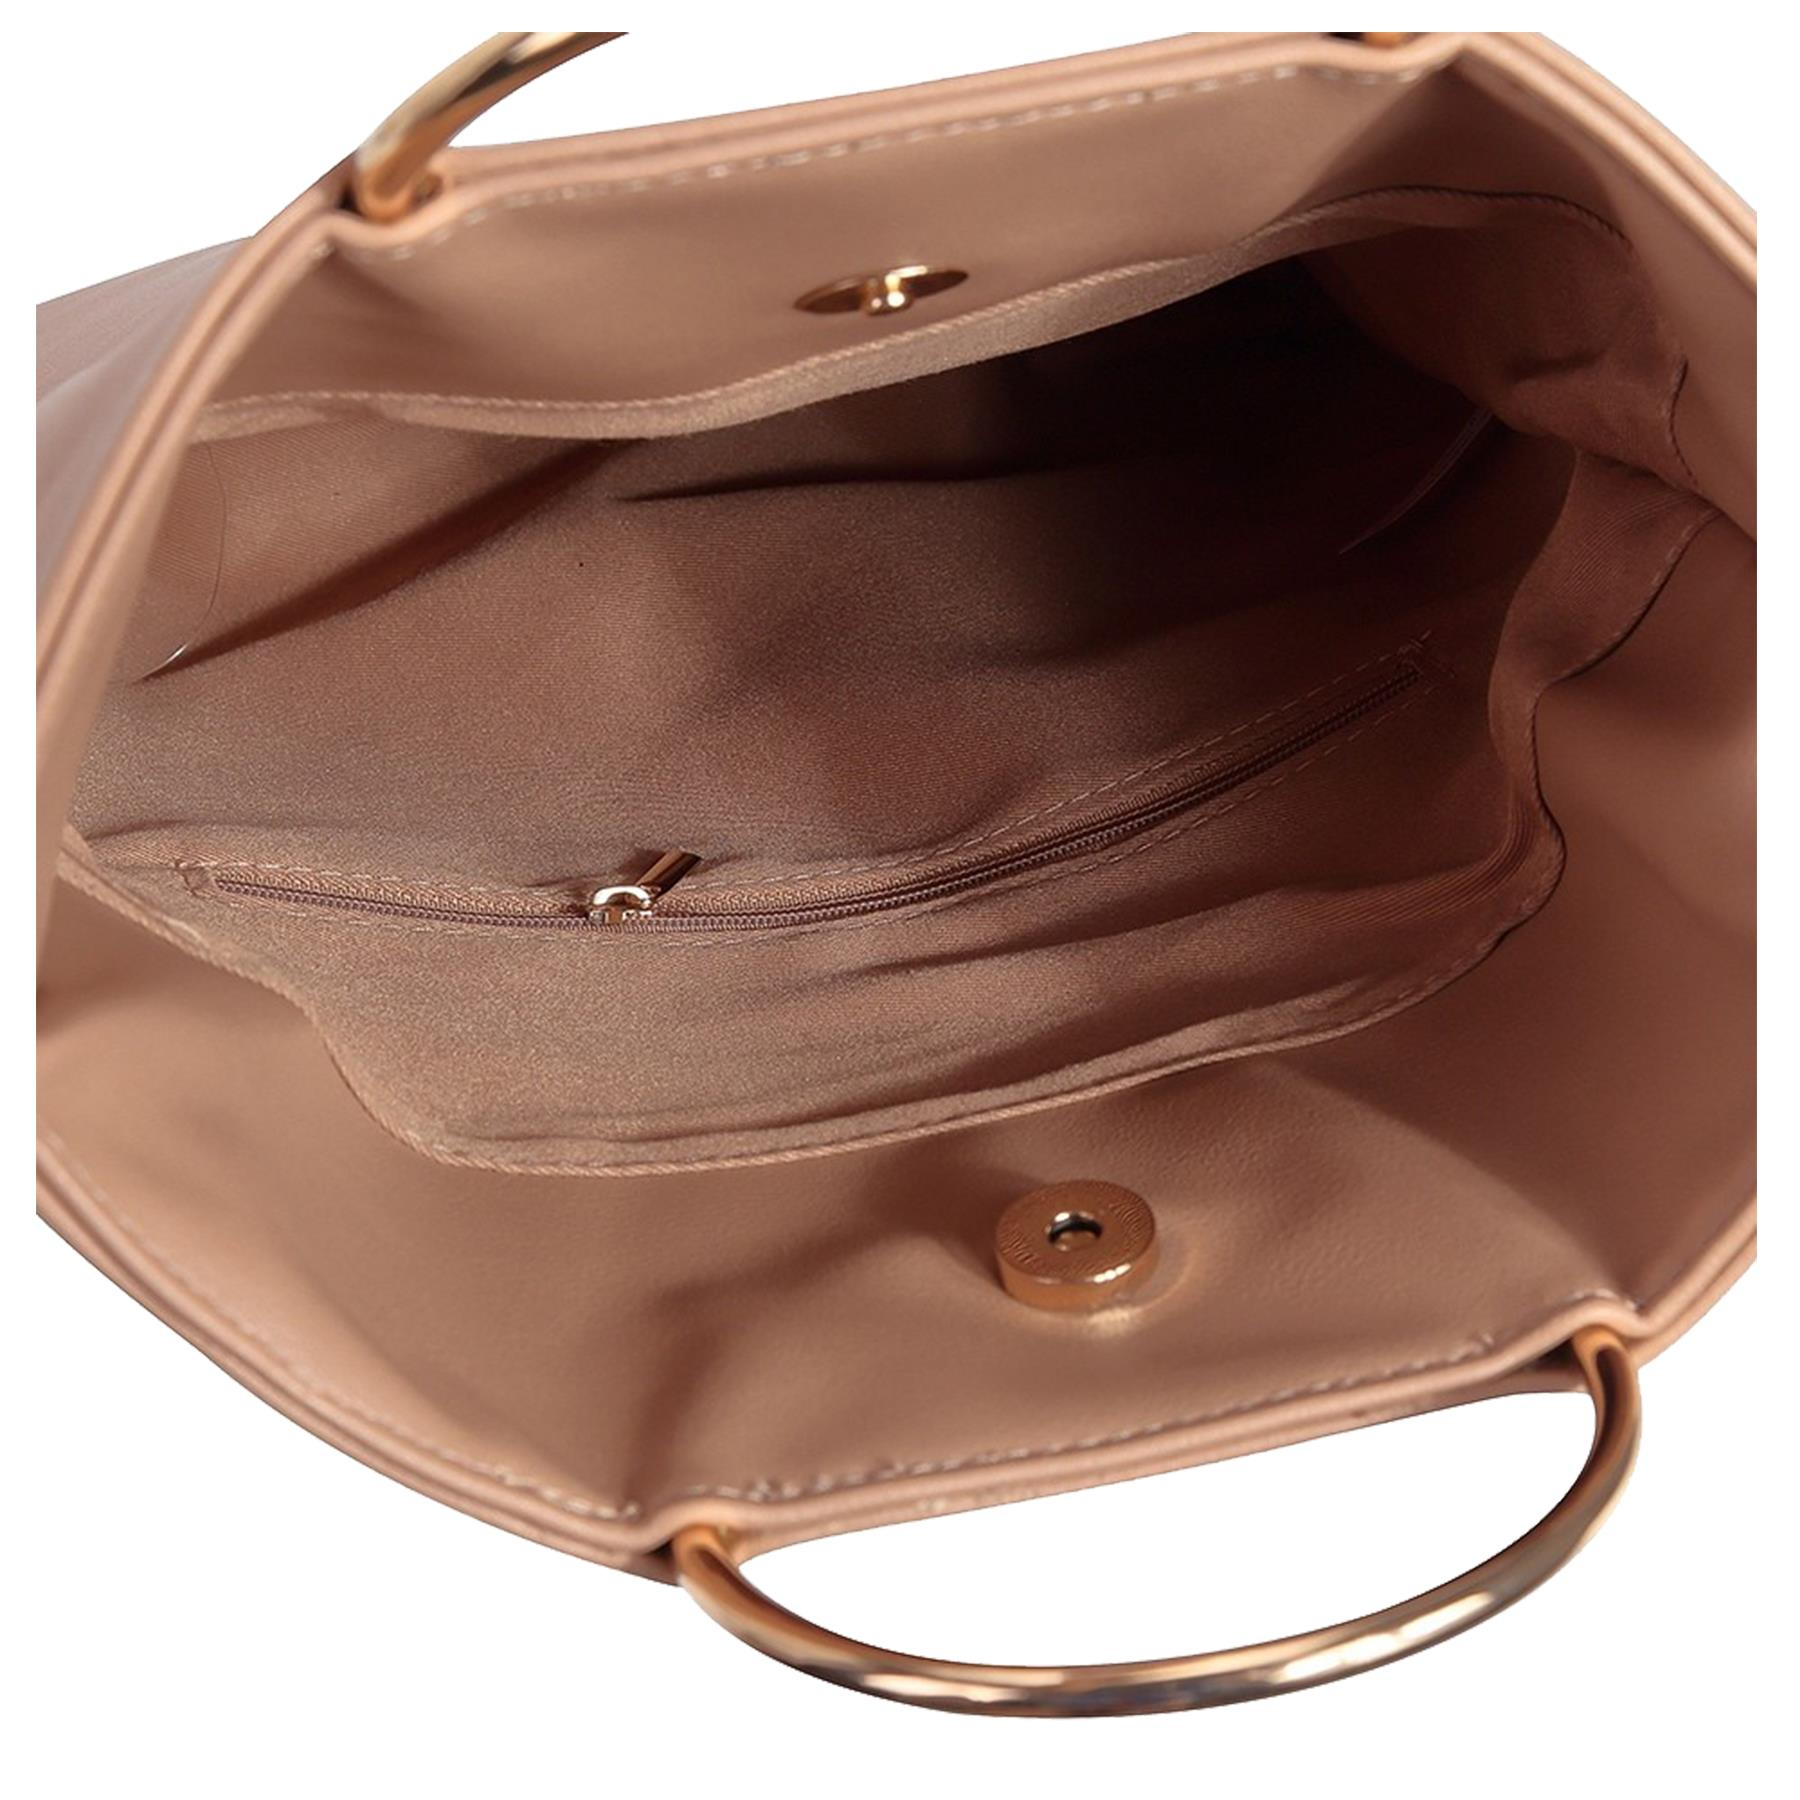 New-Women-s-Metallic-Ring-Top-Handles-Faux-Leather-Evening-Clutch-Bag thumbnail 13